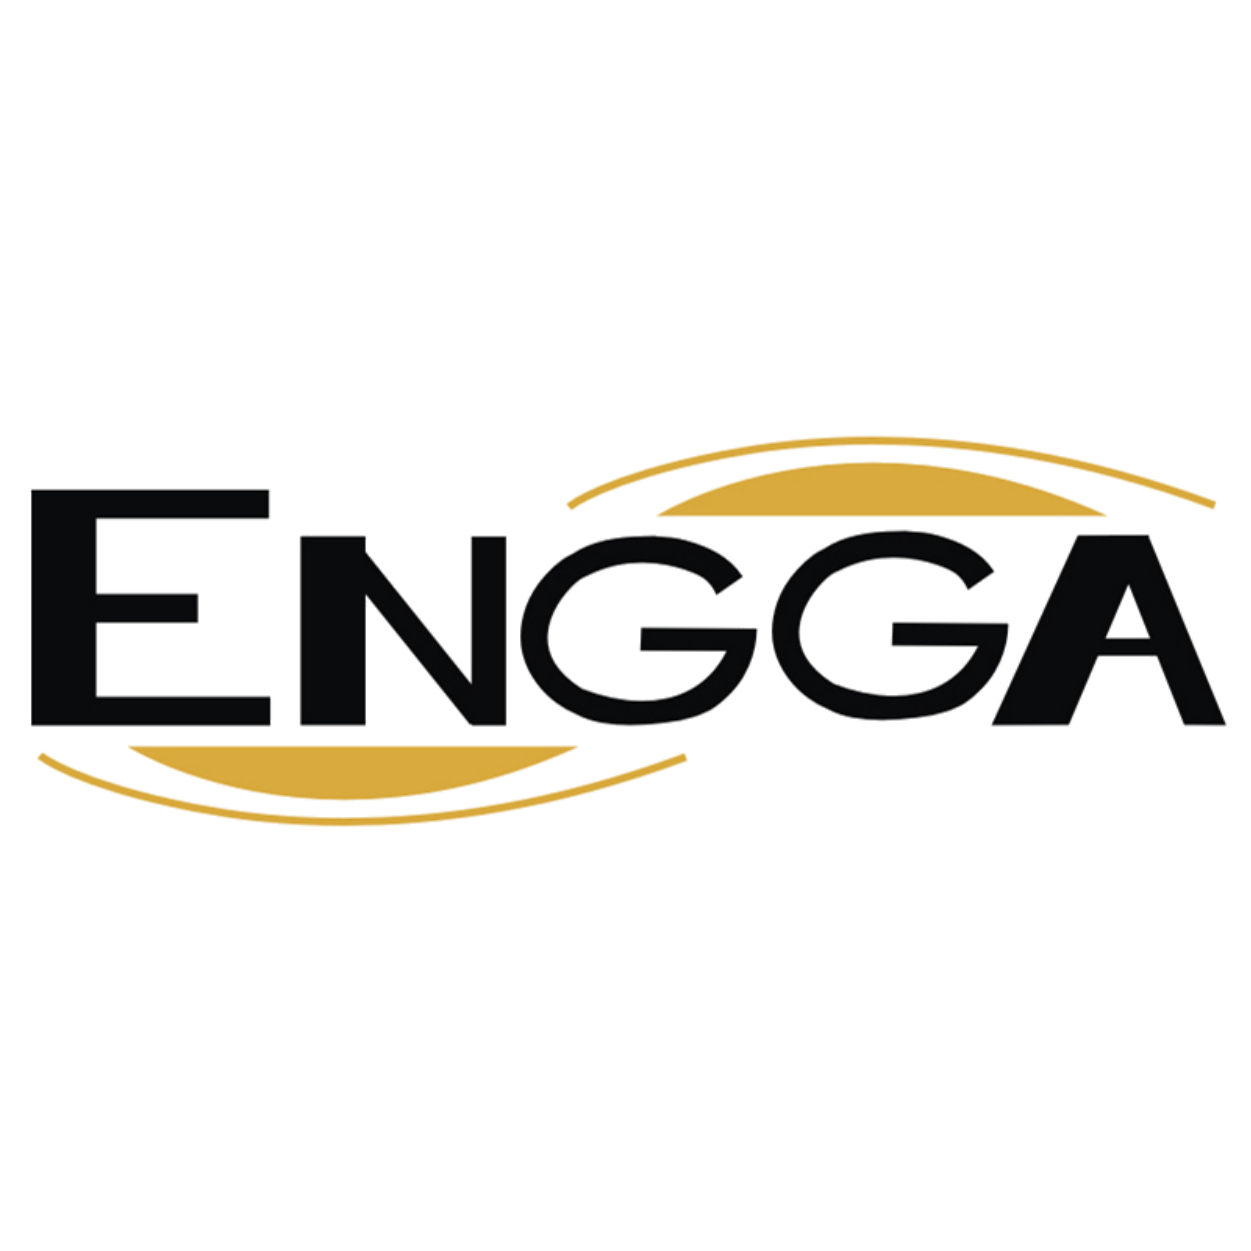 ENGGA (YANGJIANG) ELECTRIC CO., LTD.